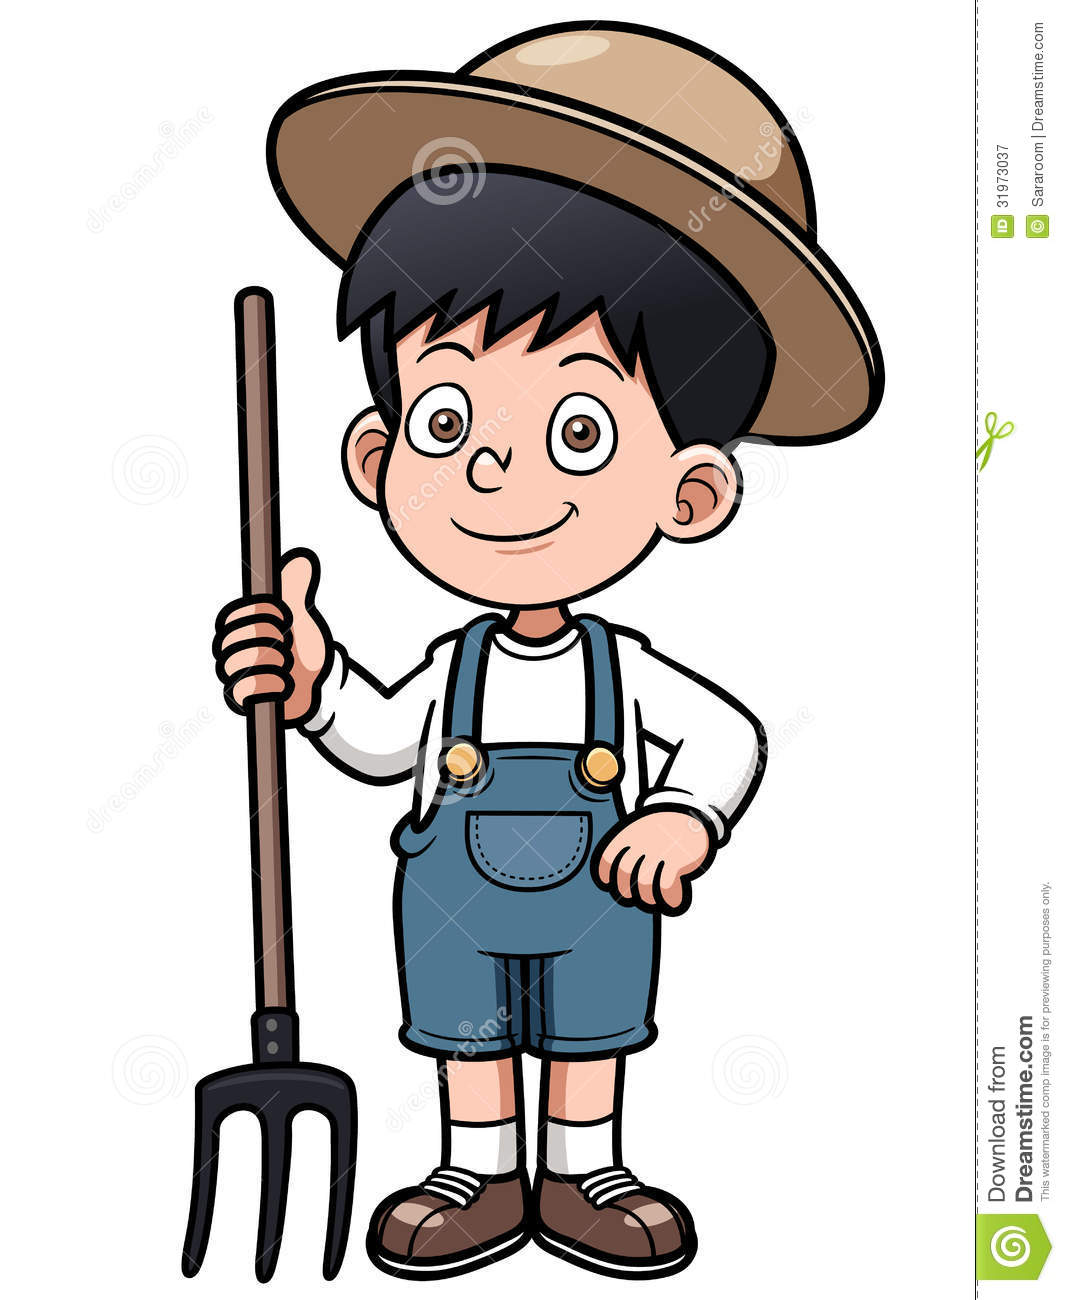 Cartoon Little Farmer Royalty Free Stock Photography - Image: 31973037